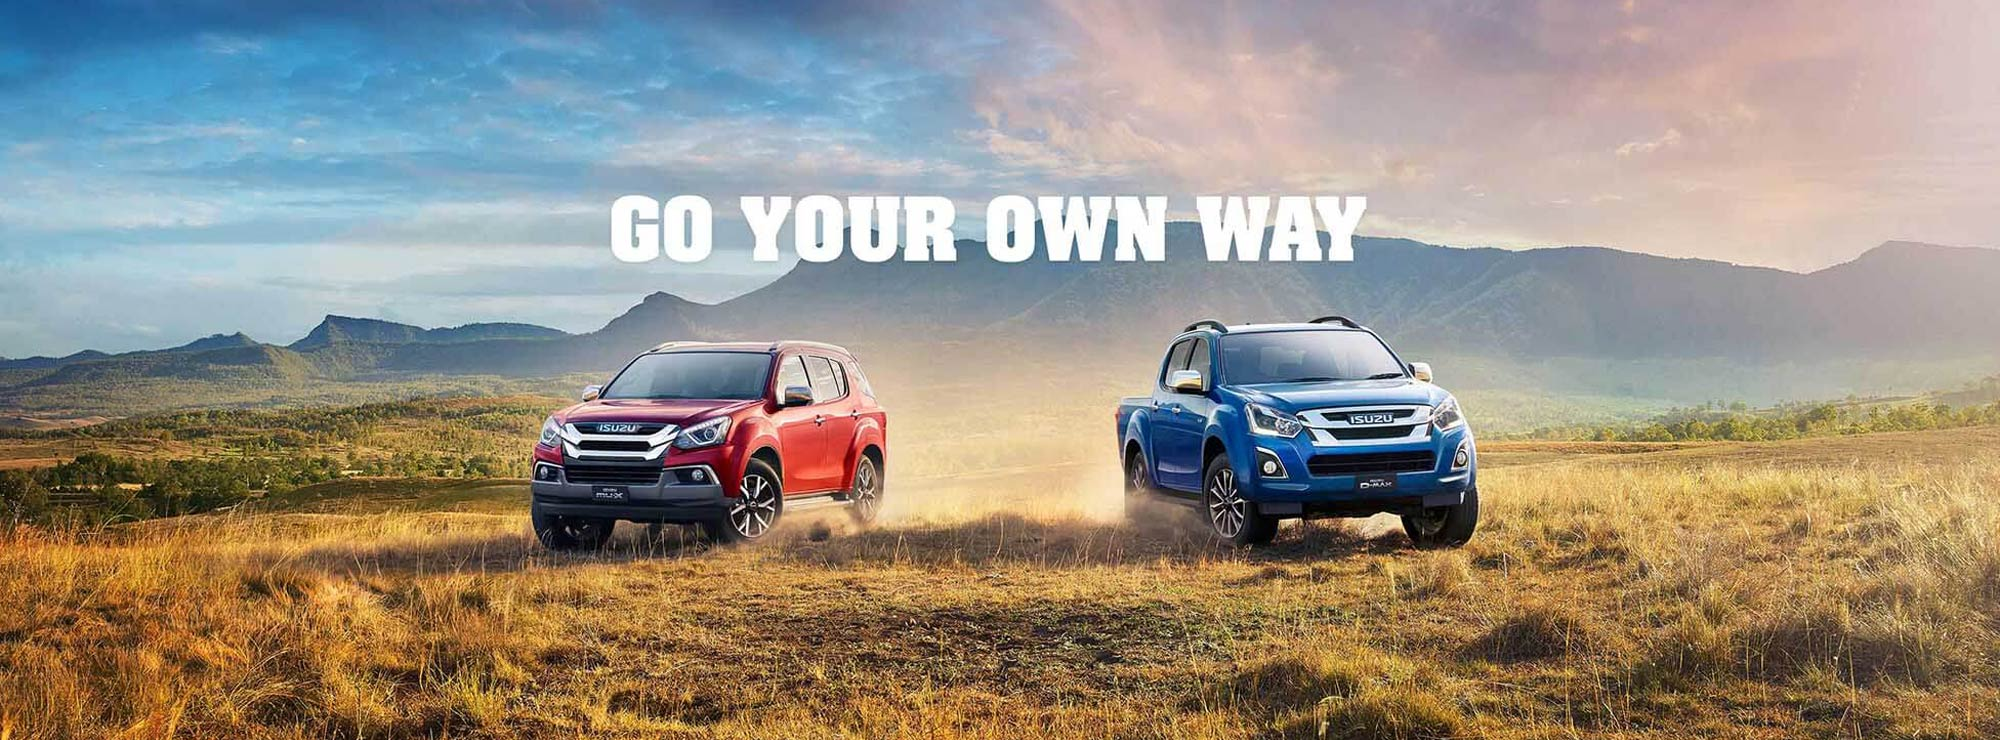 Isuzu Ute Go Your Own Way